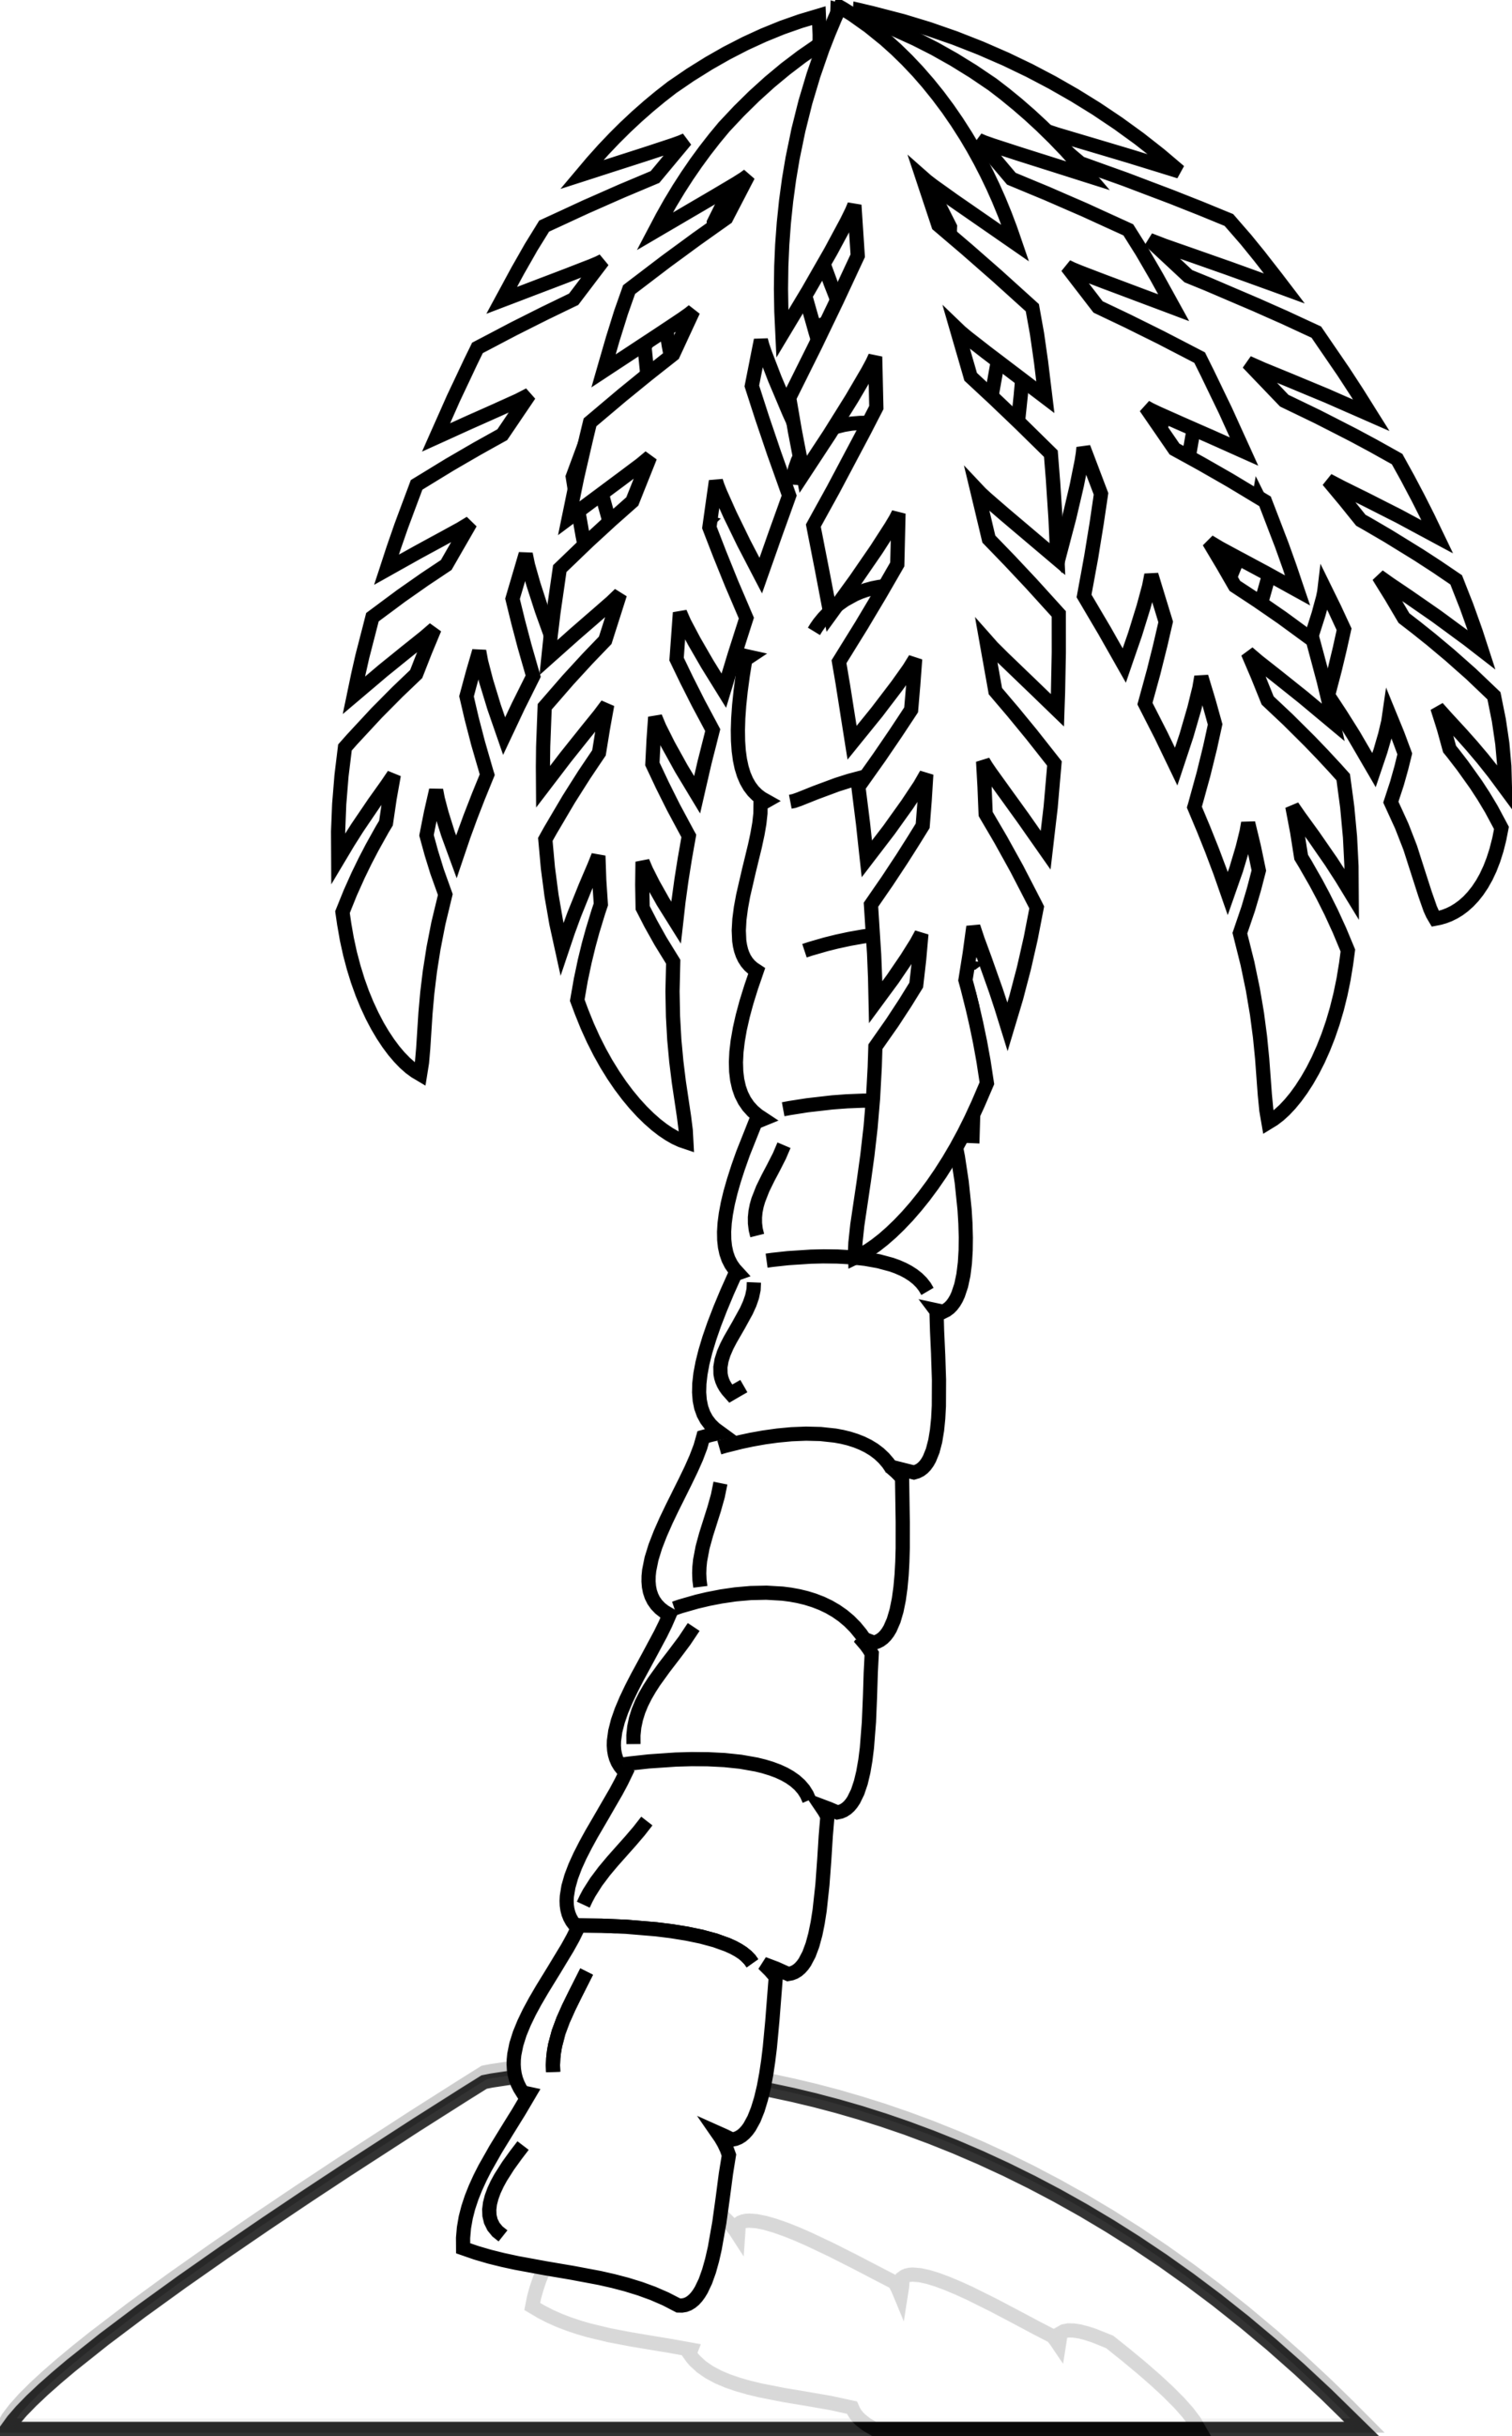 Rg 1 24 Palm Tree Black White Line Art Scalable Clipart.